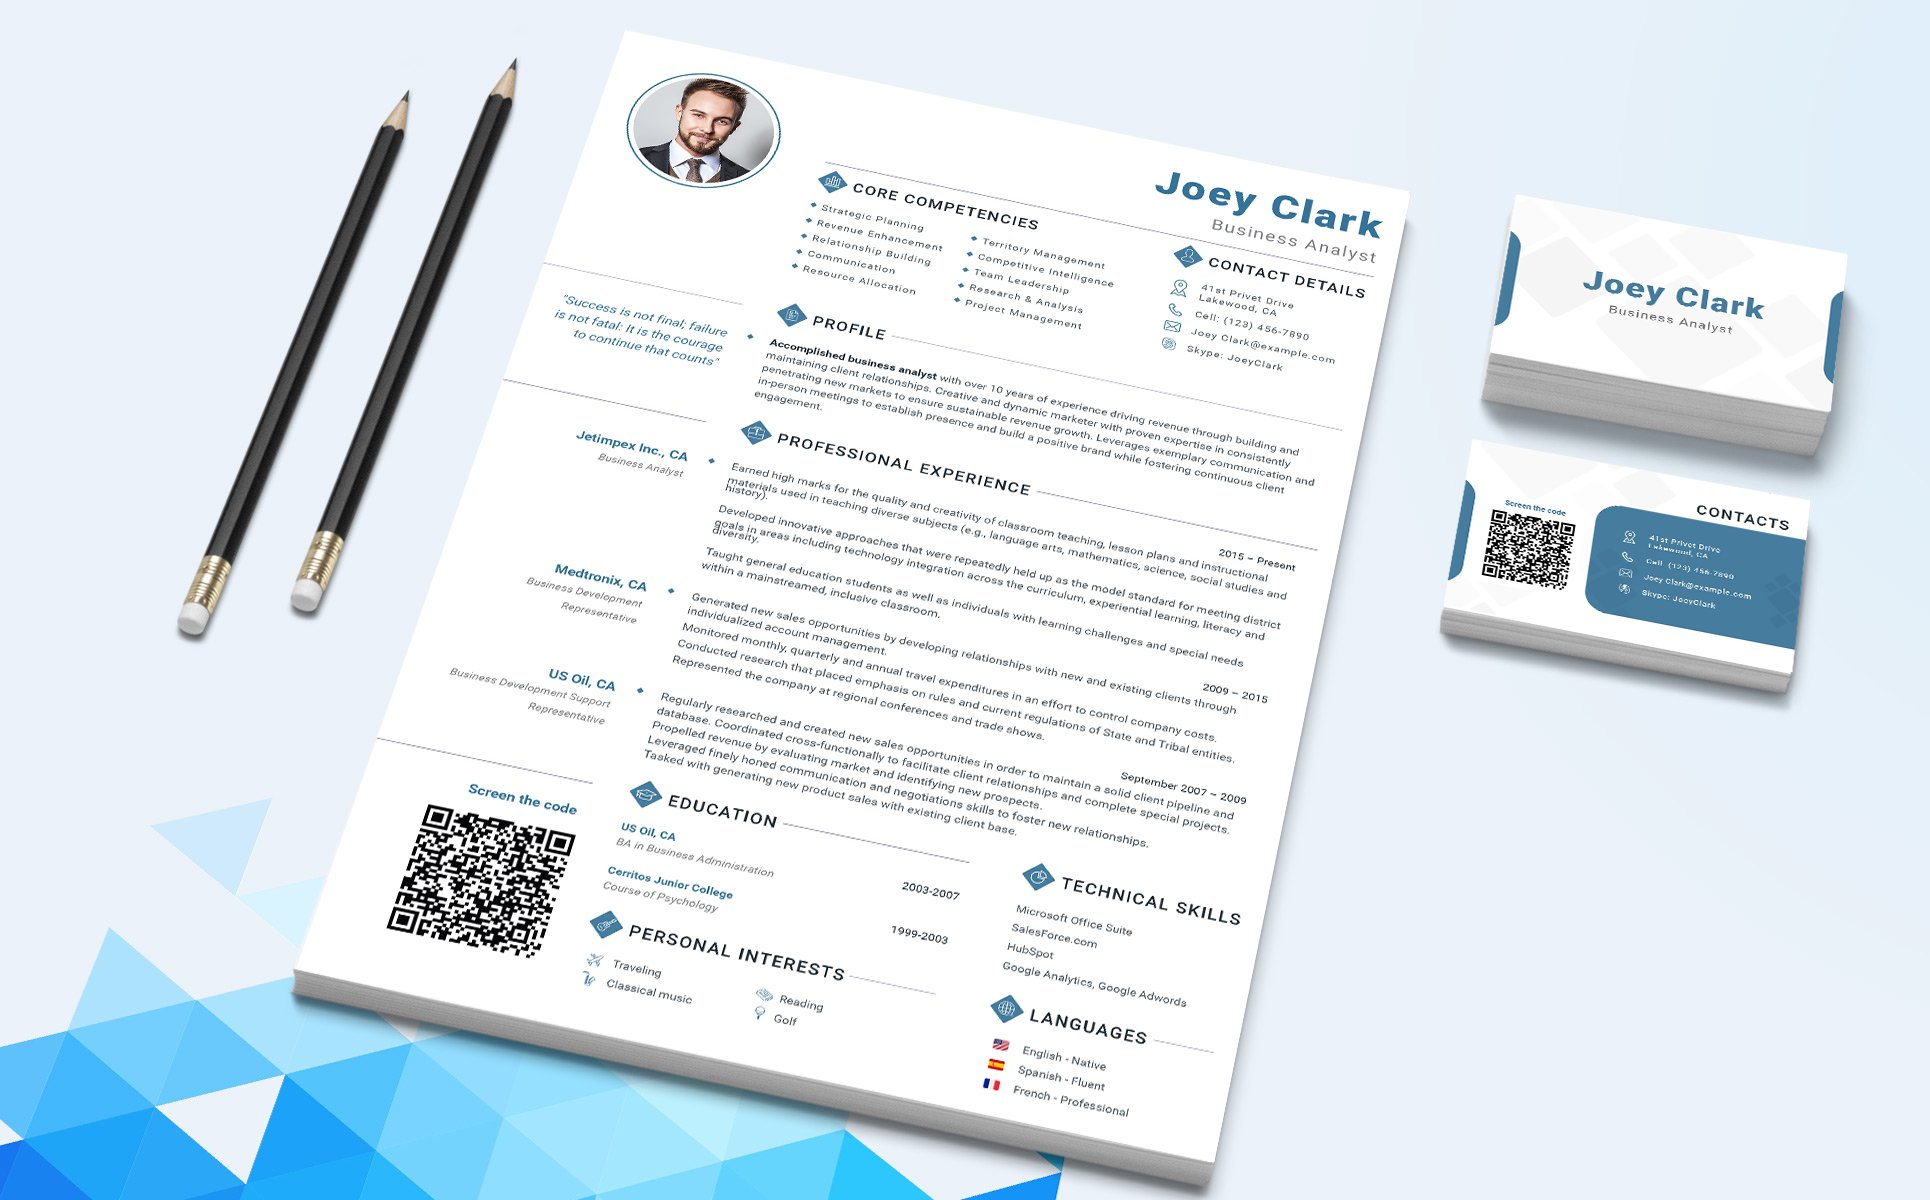 Joey Clark  Business Analyst And Financial Consultant Resume